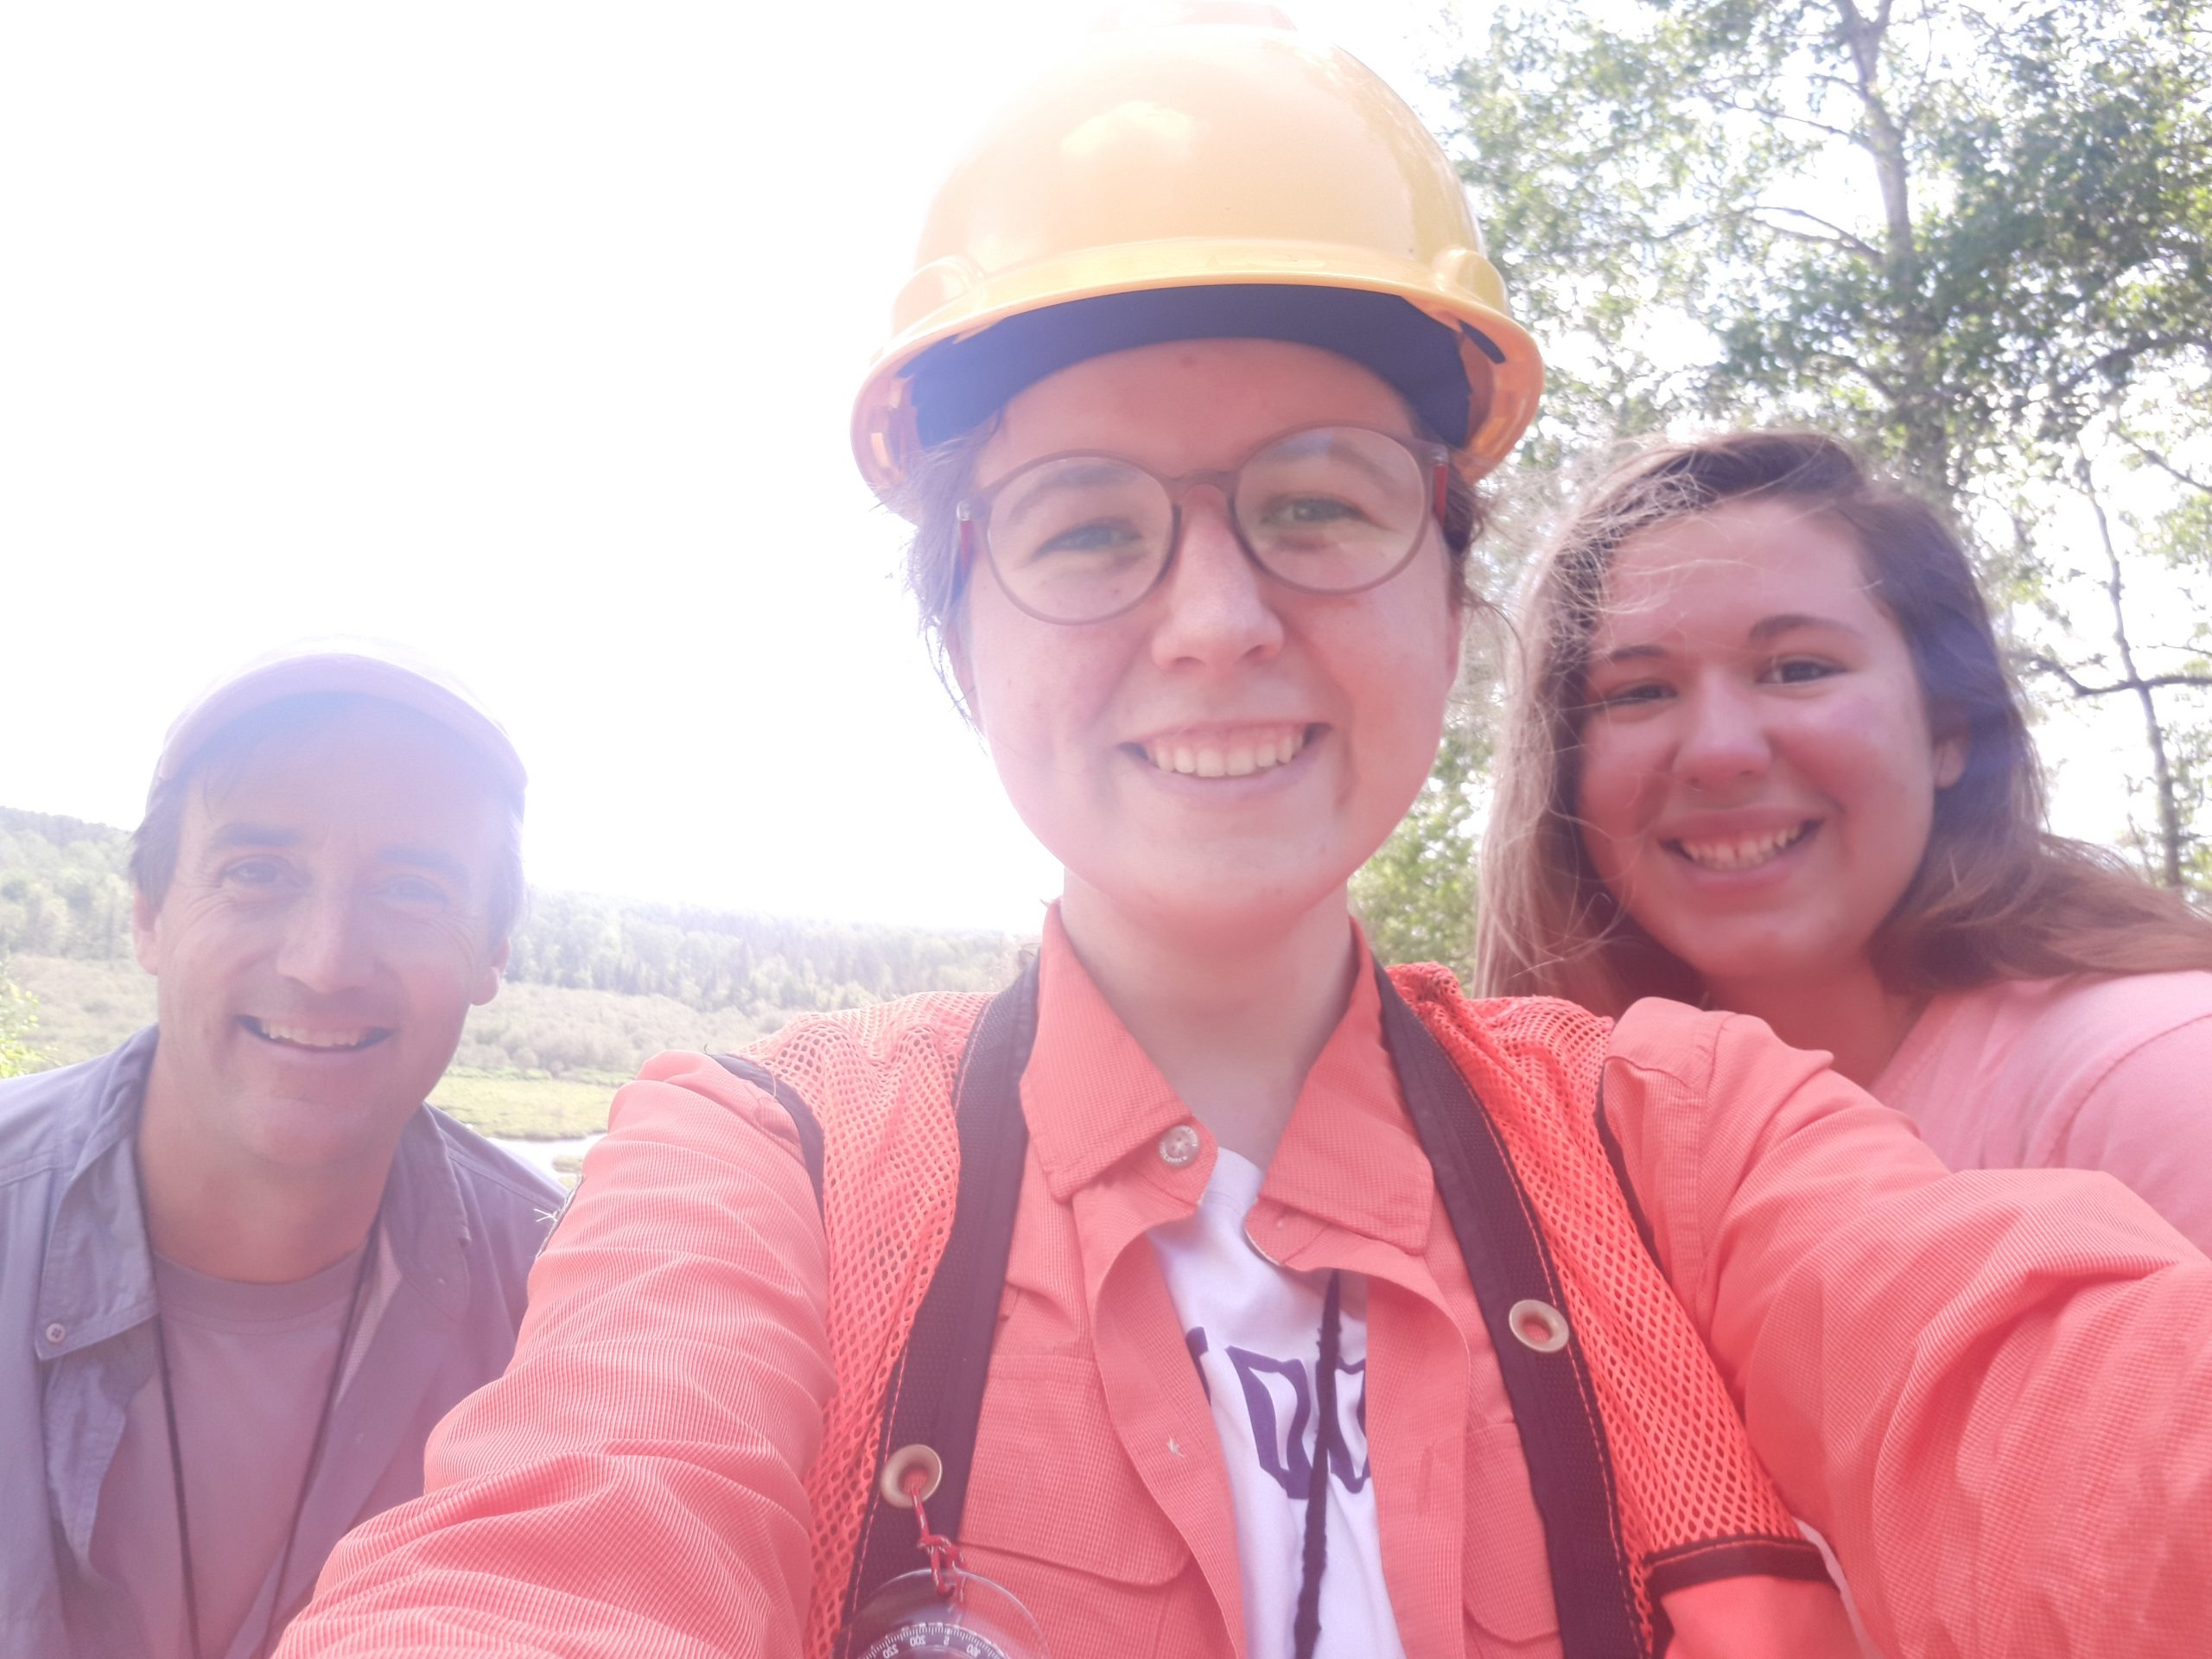 Ian, Tessa, and Emily take a selfie in the forest. Emily is wearing an orange vest and hard hat. All are smiling.